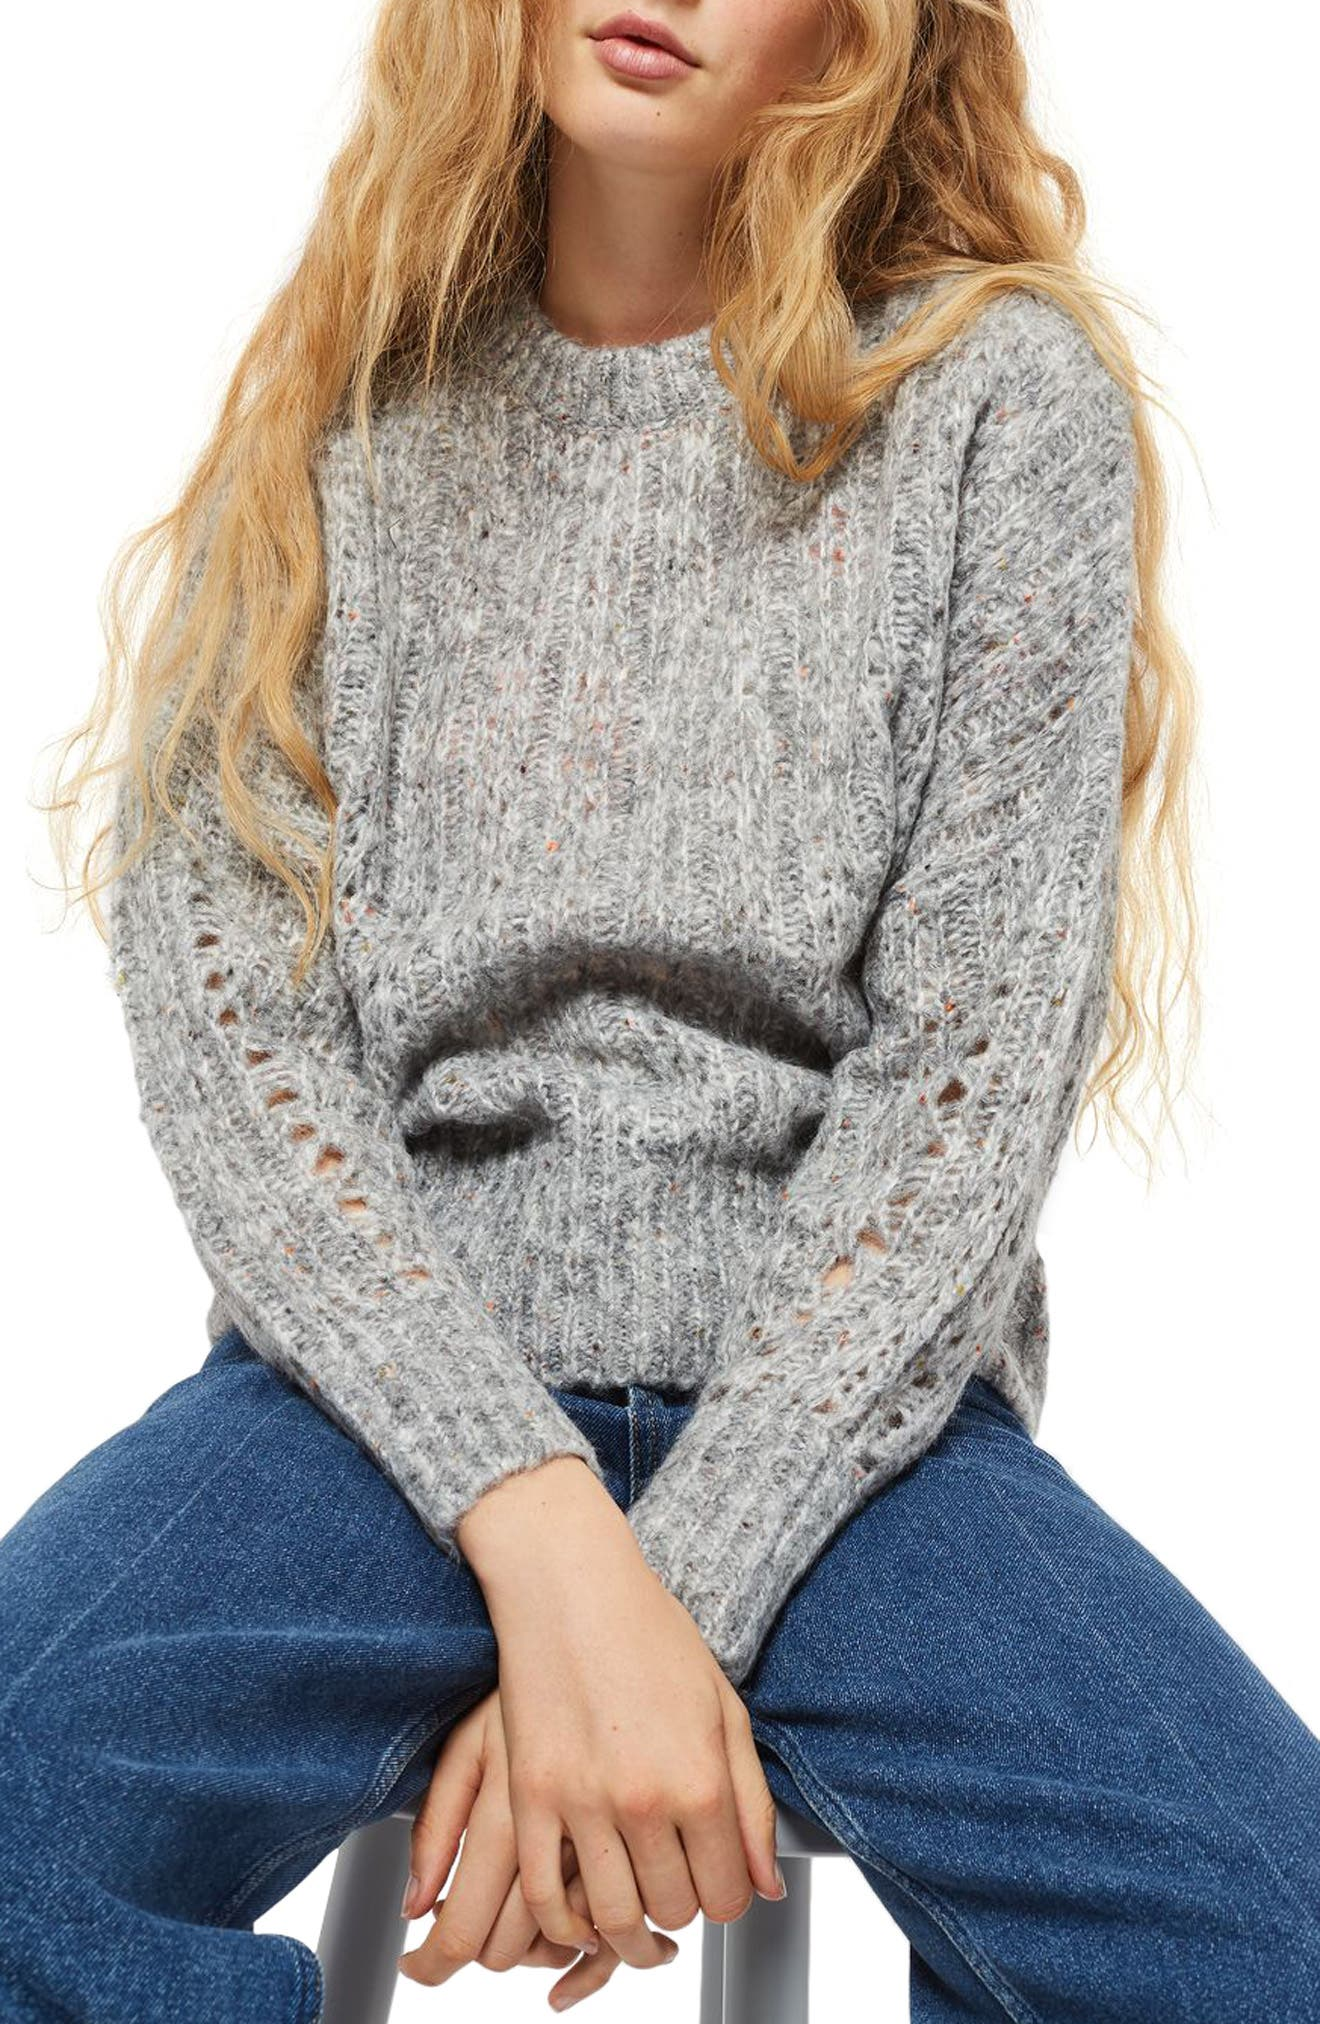 Soft Nep Sweater,                             Main thumbnail 1, color,                             021